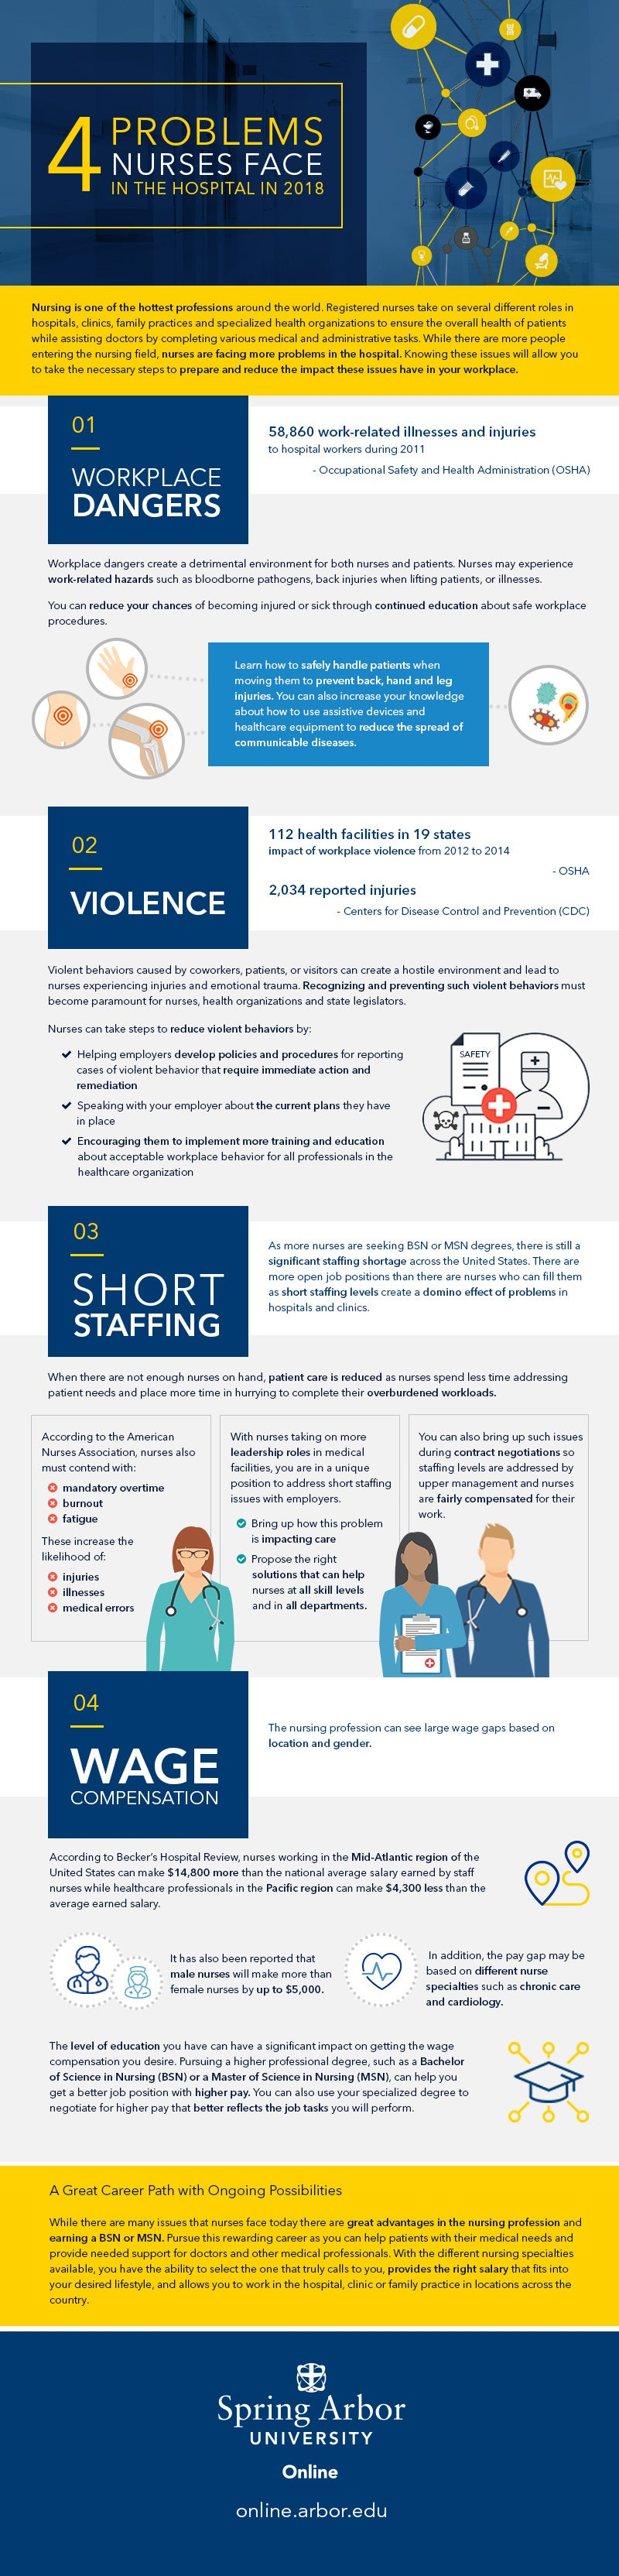 4 Problems Nurses Face in the Hospital in 2018 Infographic